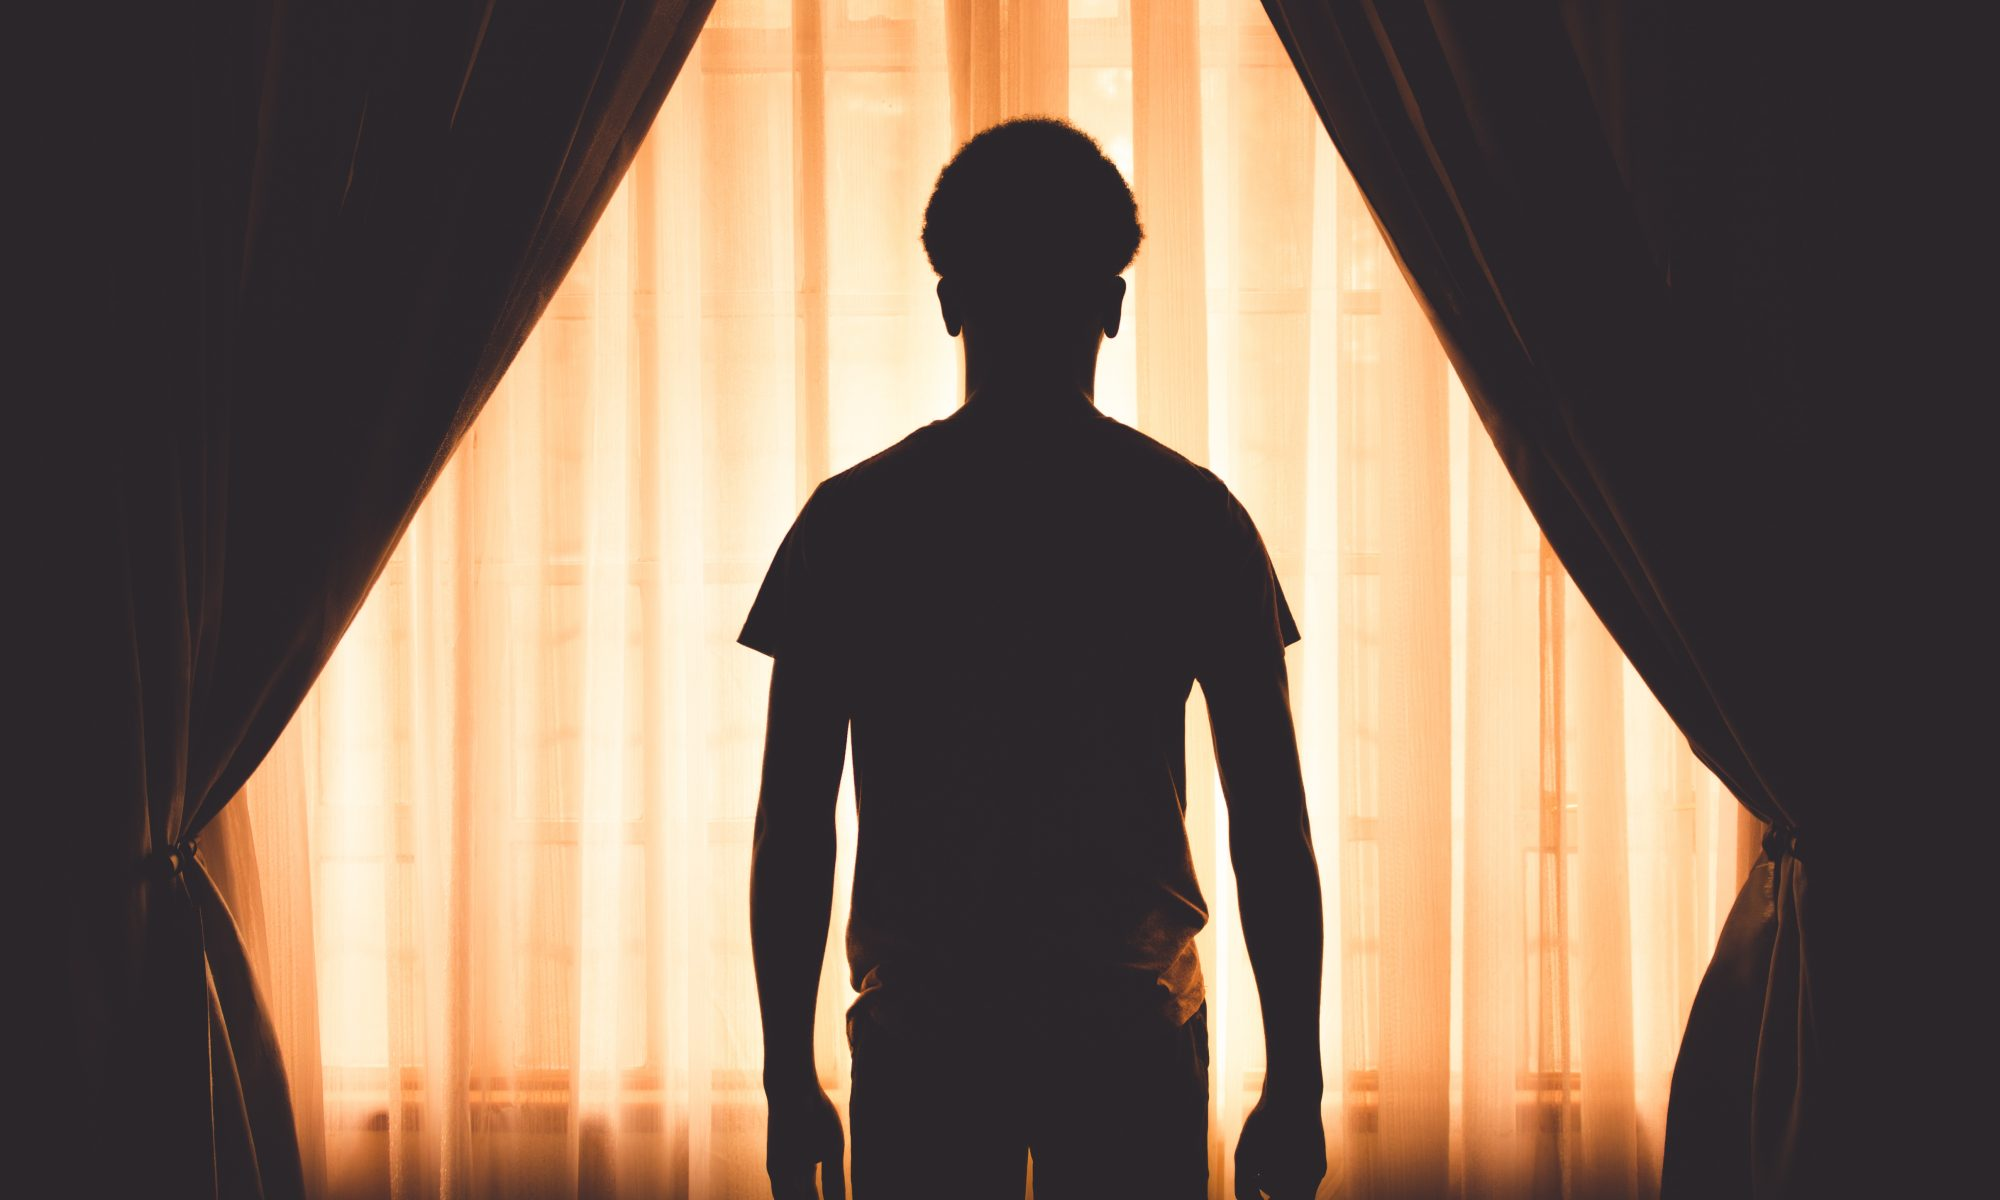 Silhouette of a man, standing in the shadows, desparate to get noticed.